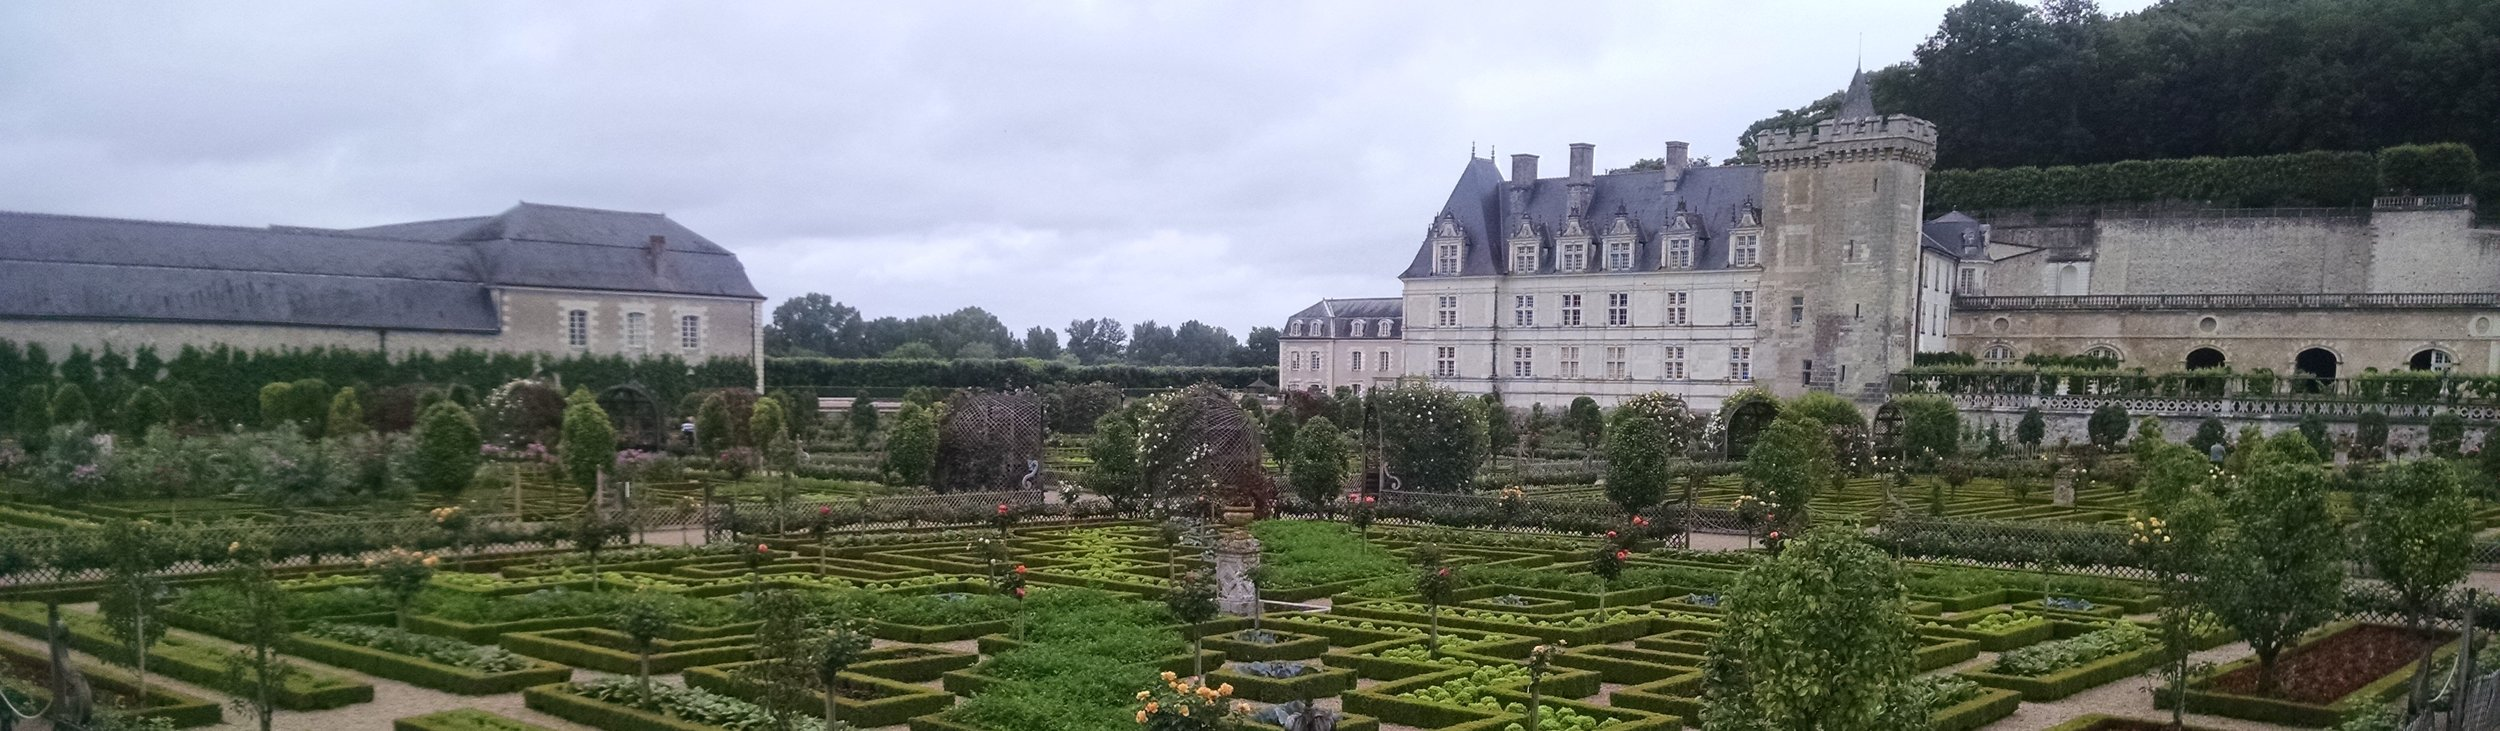 I was fortunate enough to visit this castle and gardens this summer in France.  Remarkable!